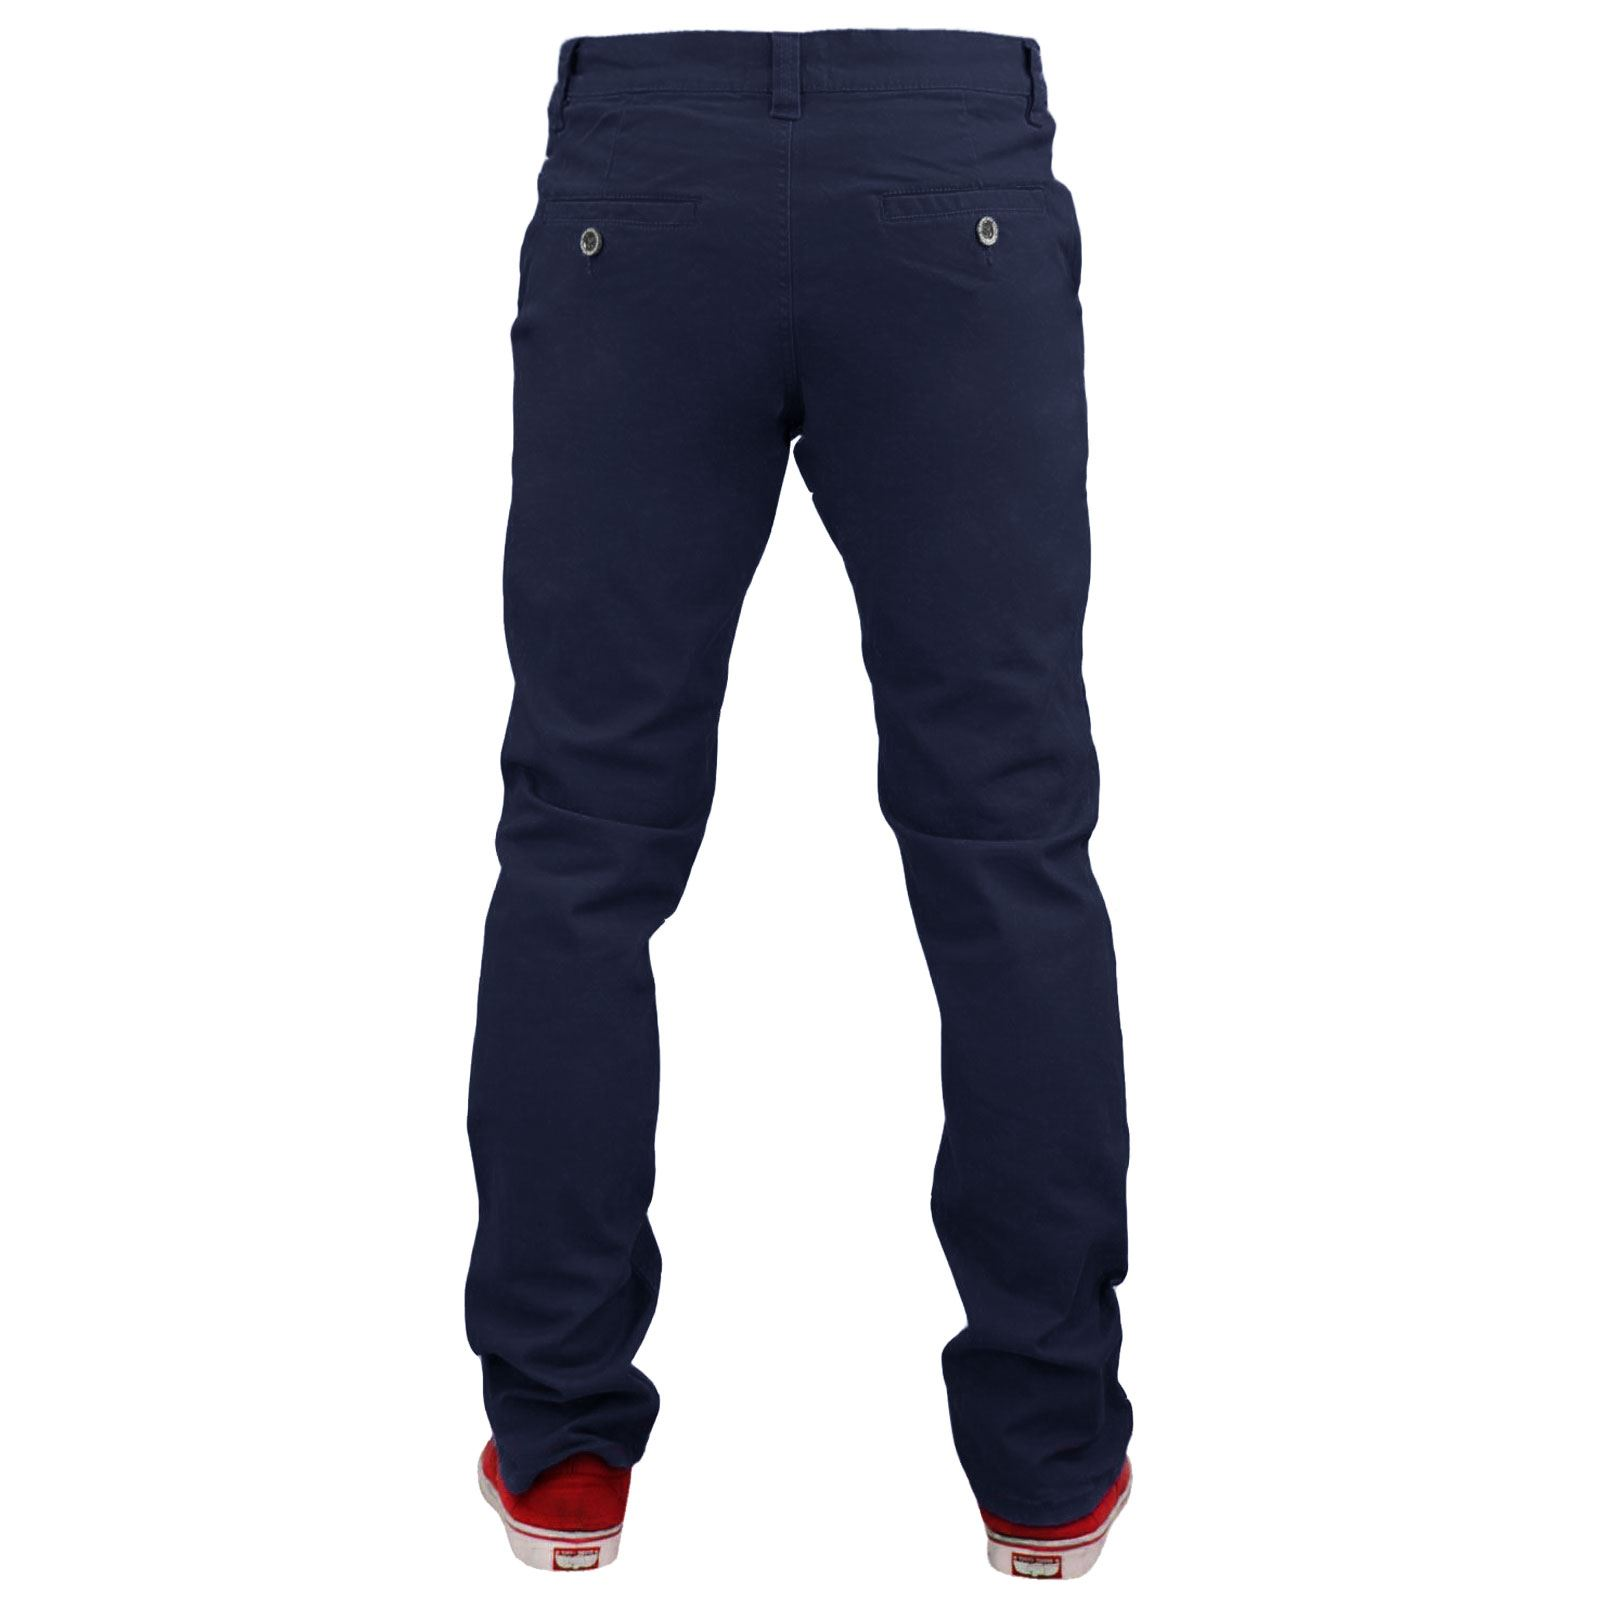 Mens Skinny Jeans Jacksouth Fit Denim Cotton Twill Stretch Chinos Pants Trousers